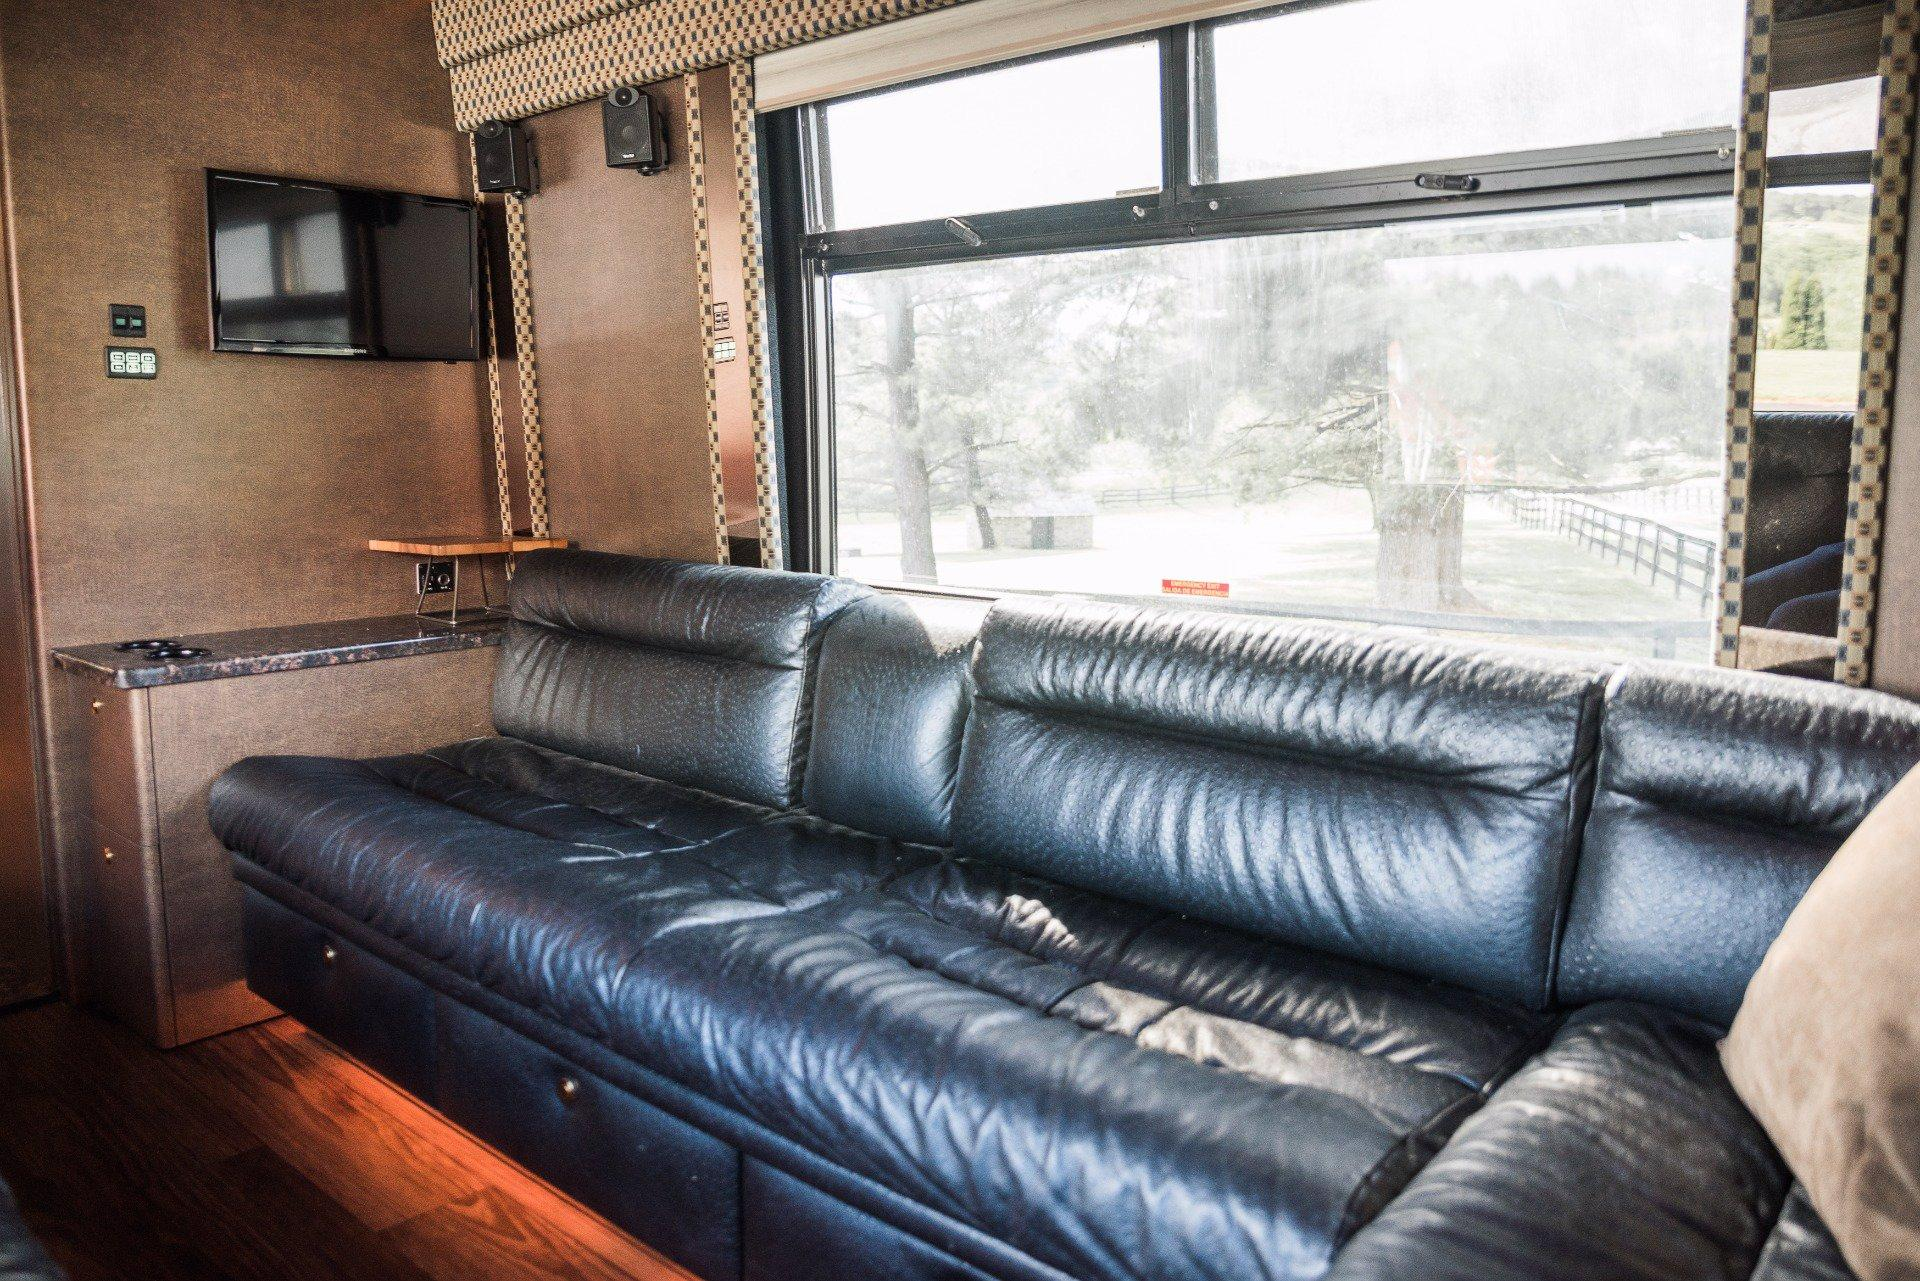 Used-2004-Amadas-Featherlite-MCI-E4500